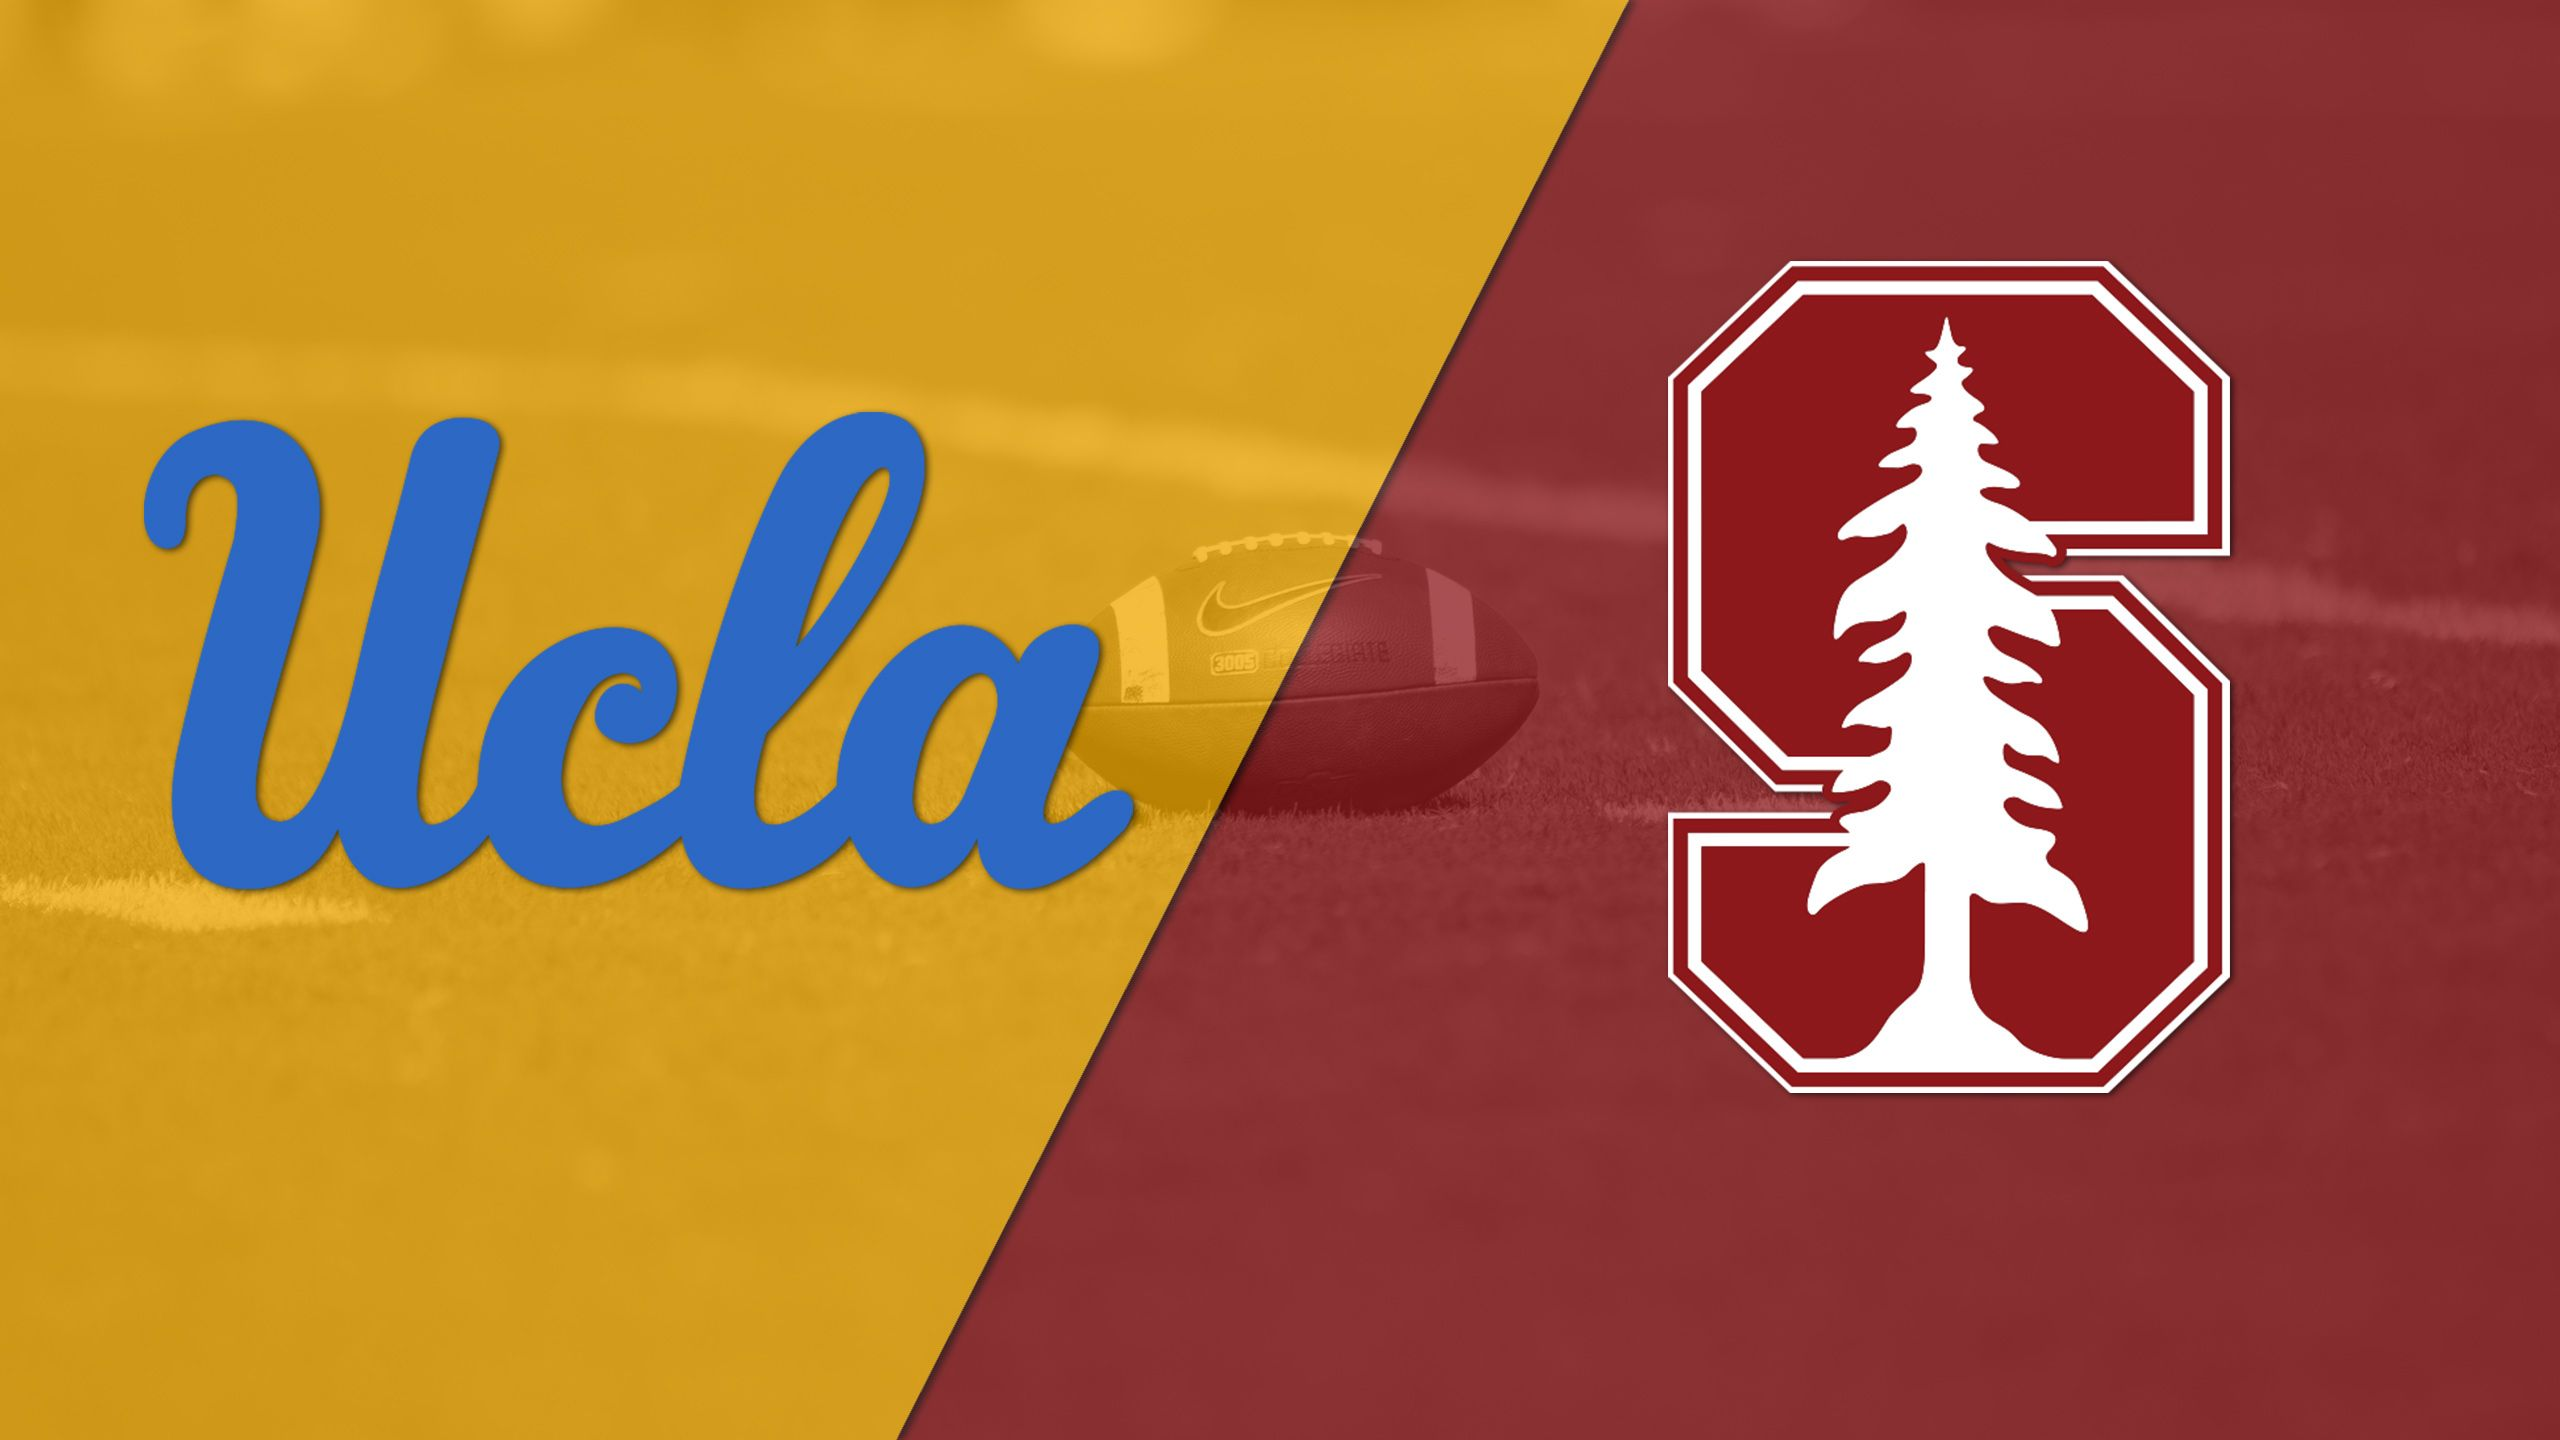 In Spanish - In Spanish - UCLA vs. Stanford (Football) (Football)